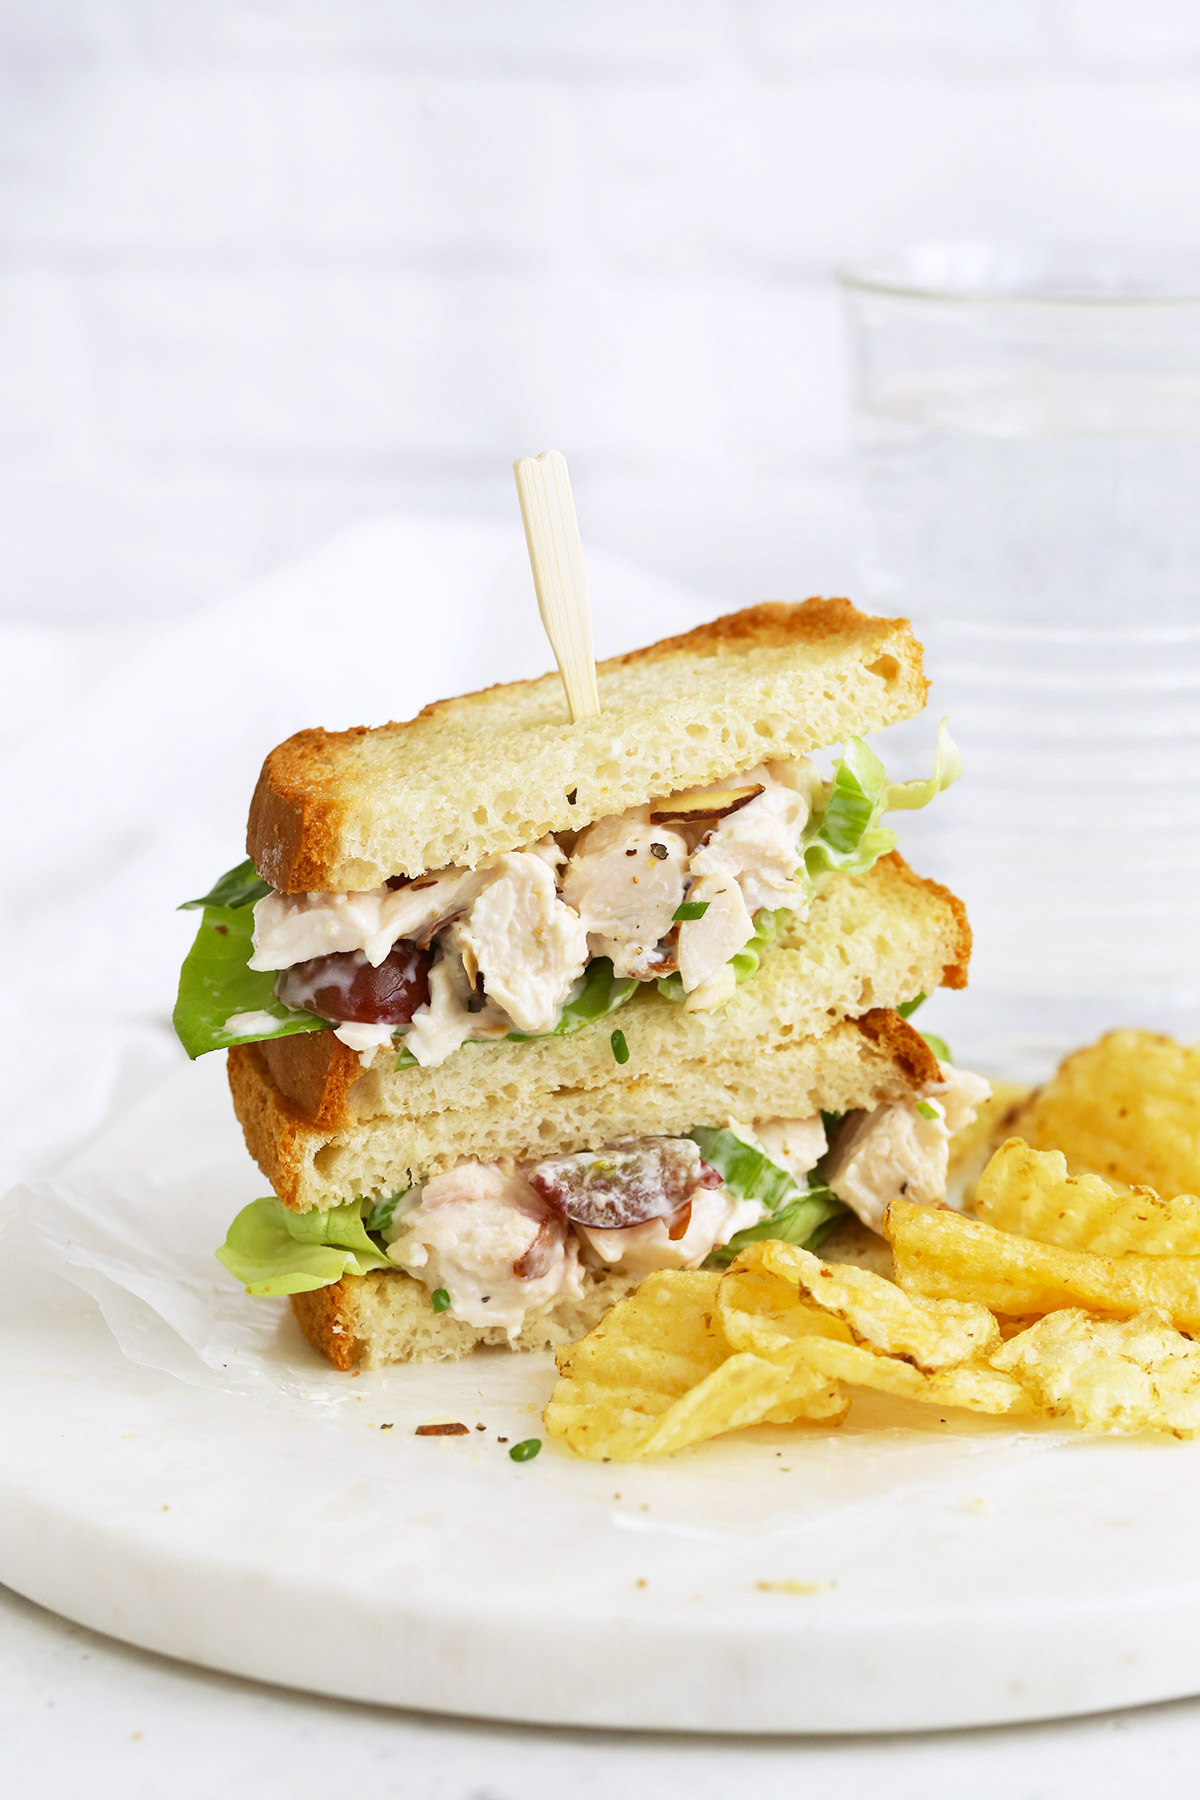 A gluten-free chicken salad sandwich on a marble serving board with kettle chips next to it.